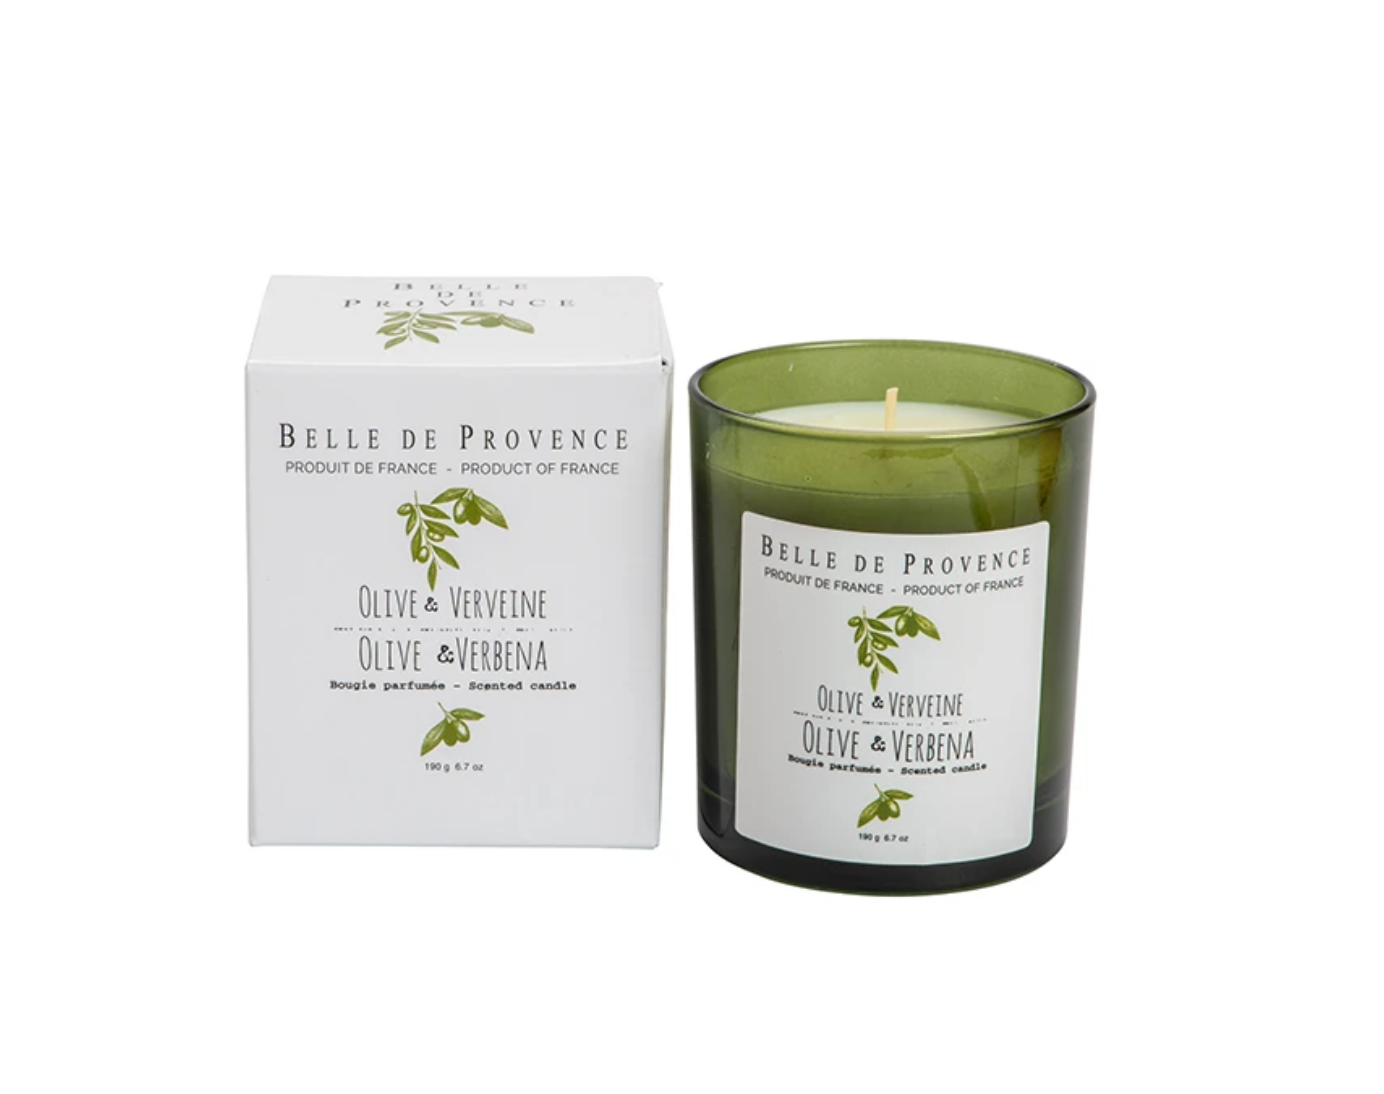 Belle de Provence Olive Oil Collection Scented Candle